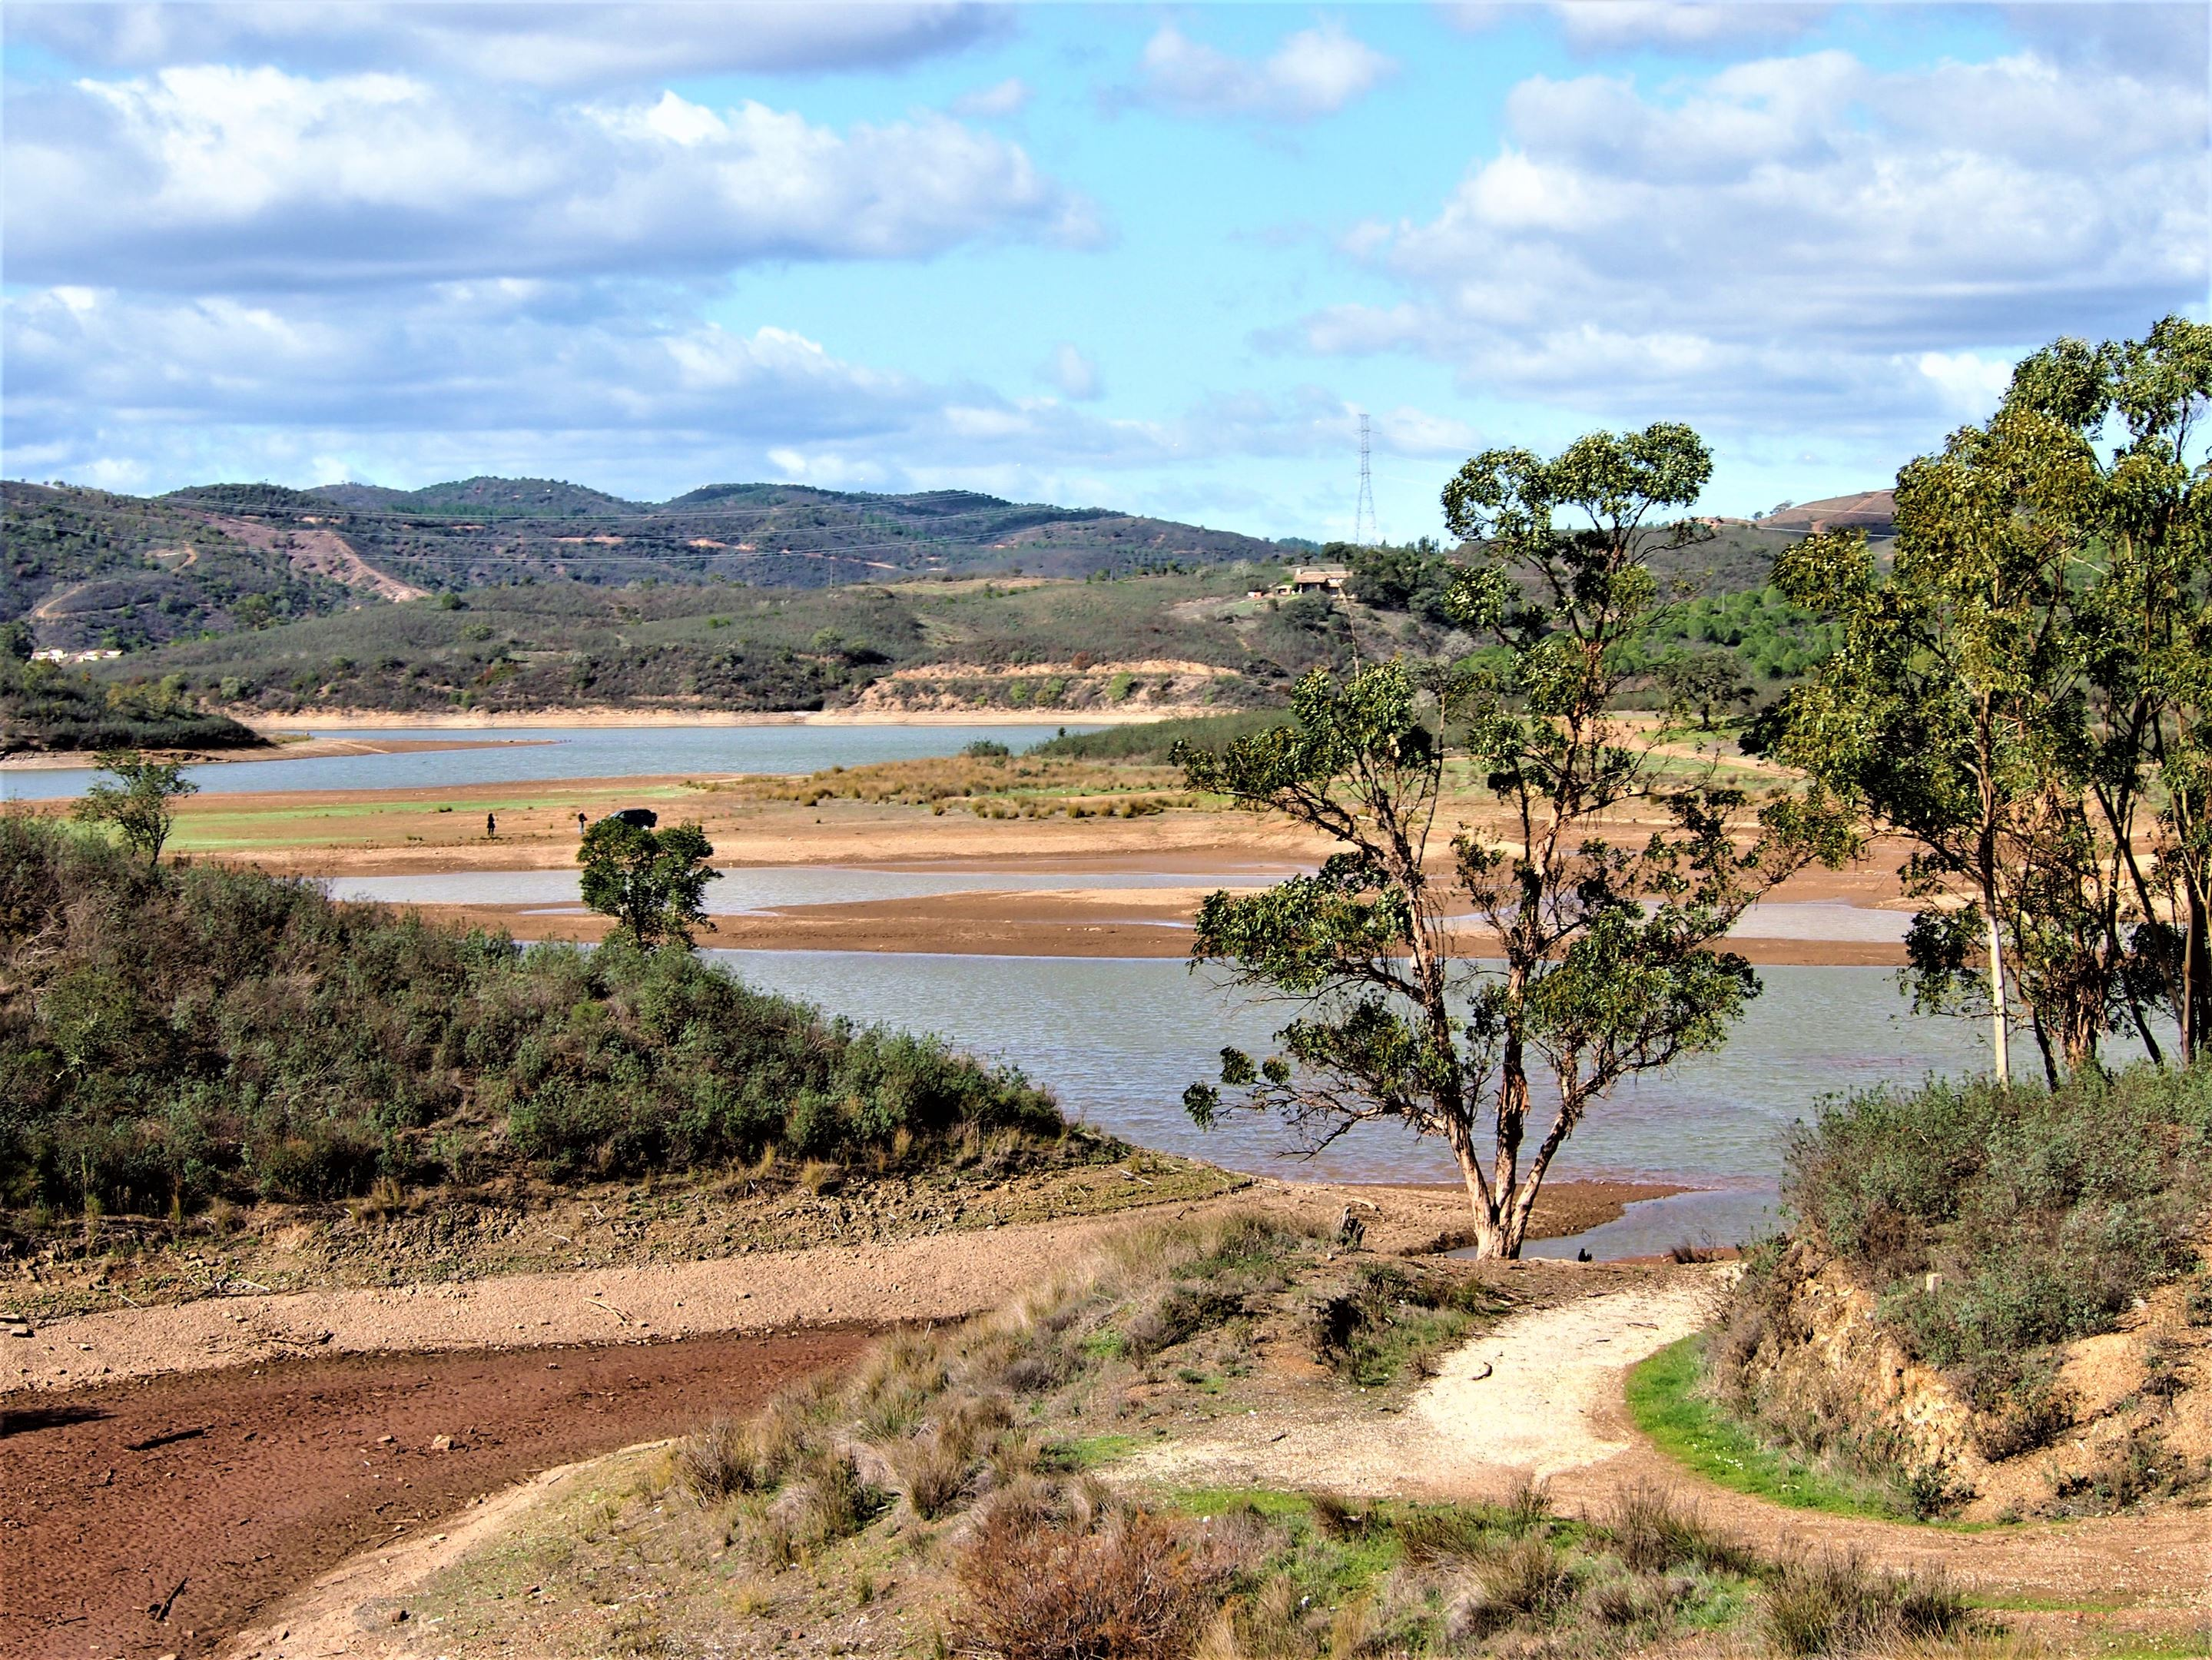 View of the Barragem do Funcho (or Funcho dam), on the way from Messines to São Marcos da Serra